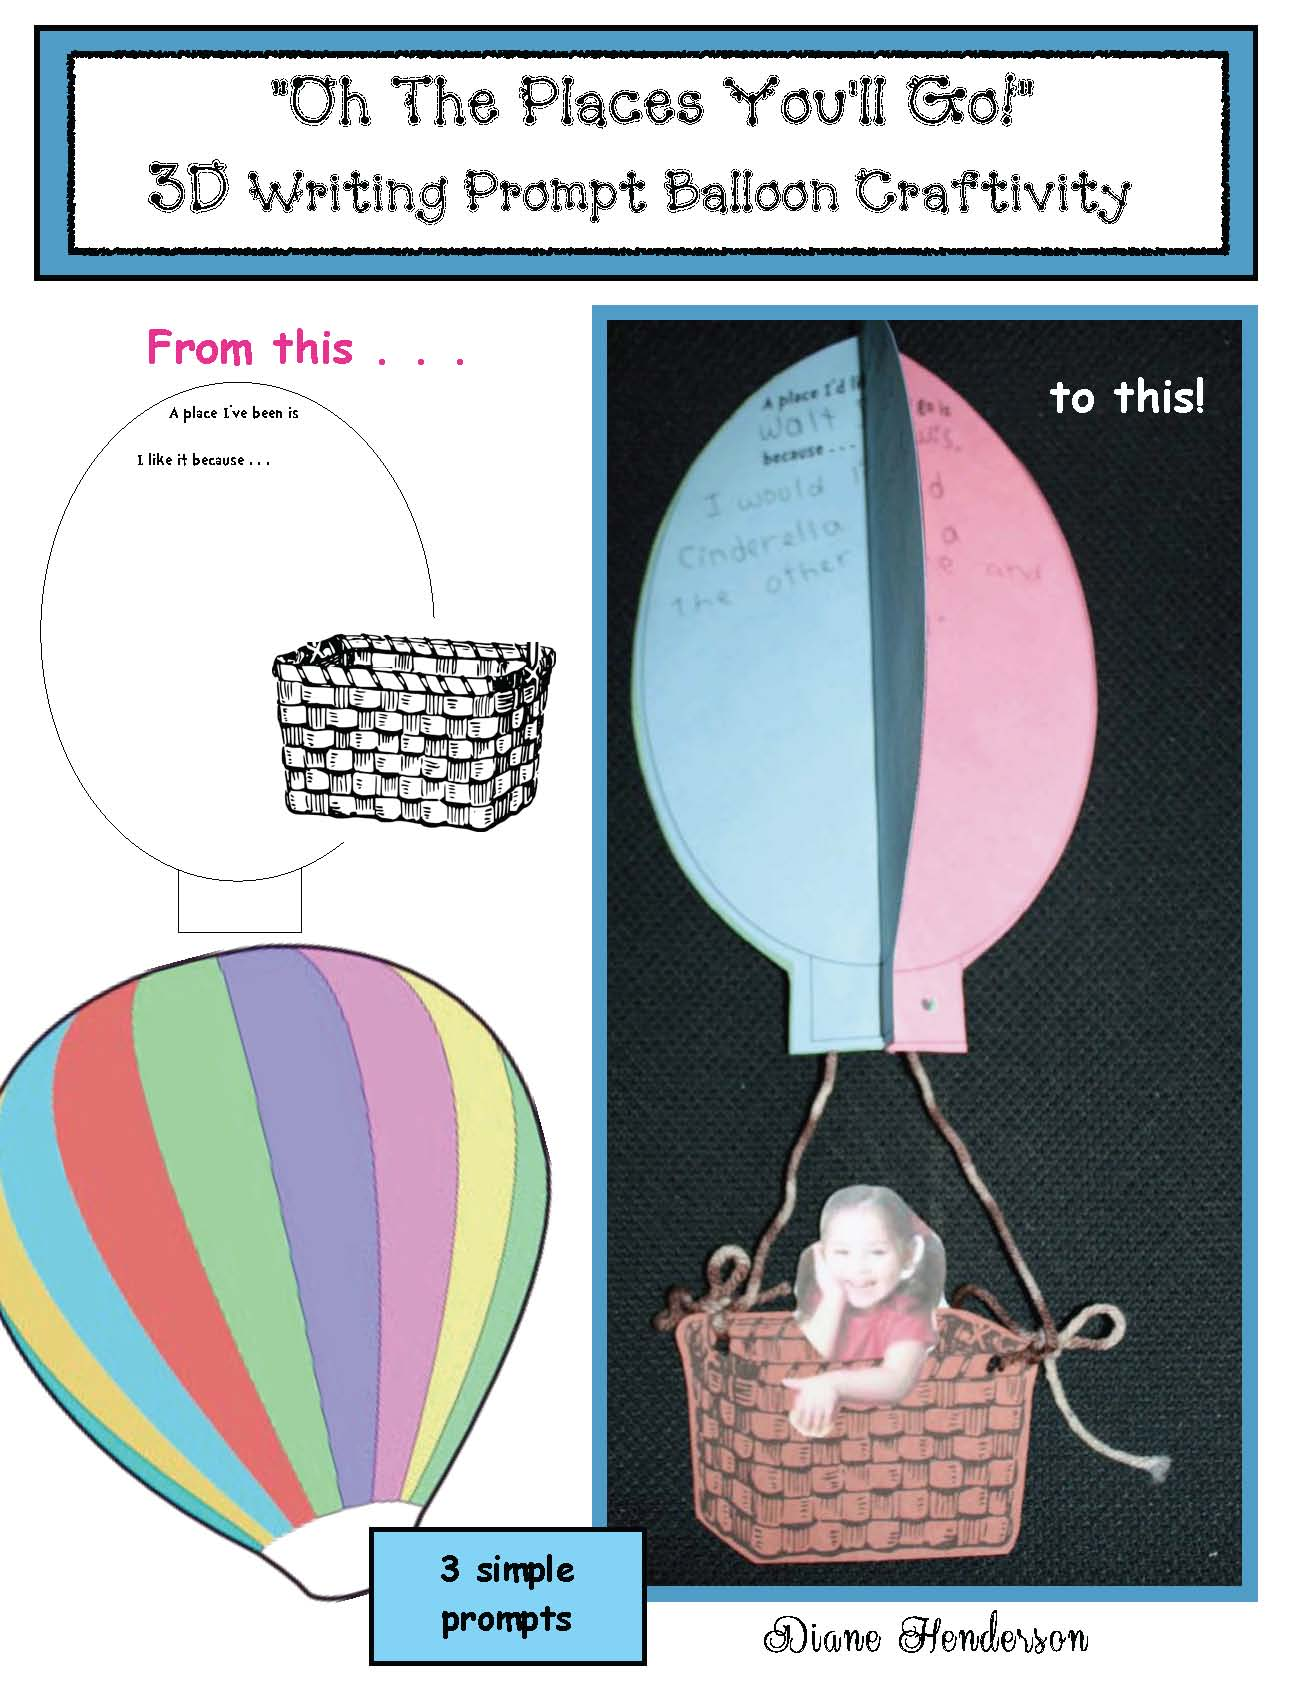 seuss activities, seuss crafts, seuss writing prompts, seuss bulletin boards, seuss centers, oh the places you'll go activities, oh the places you'll go crafts, end of the year activities, hot air balloon crafts, hot air balloon activities, if i ran the circus activities